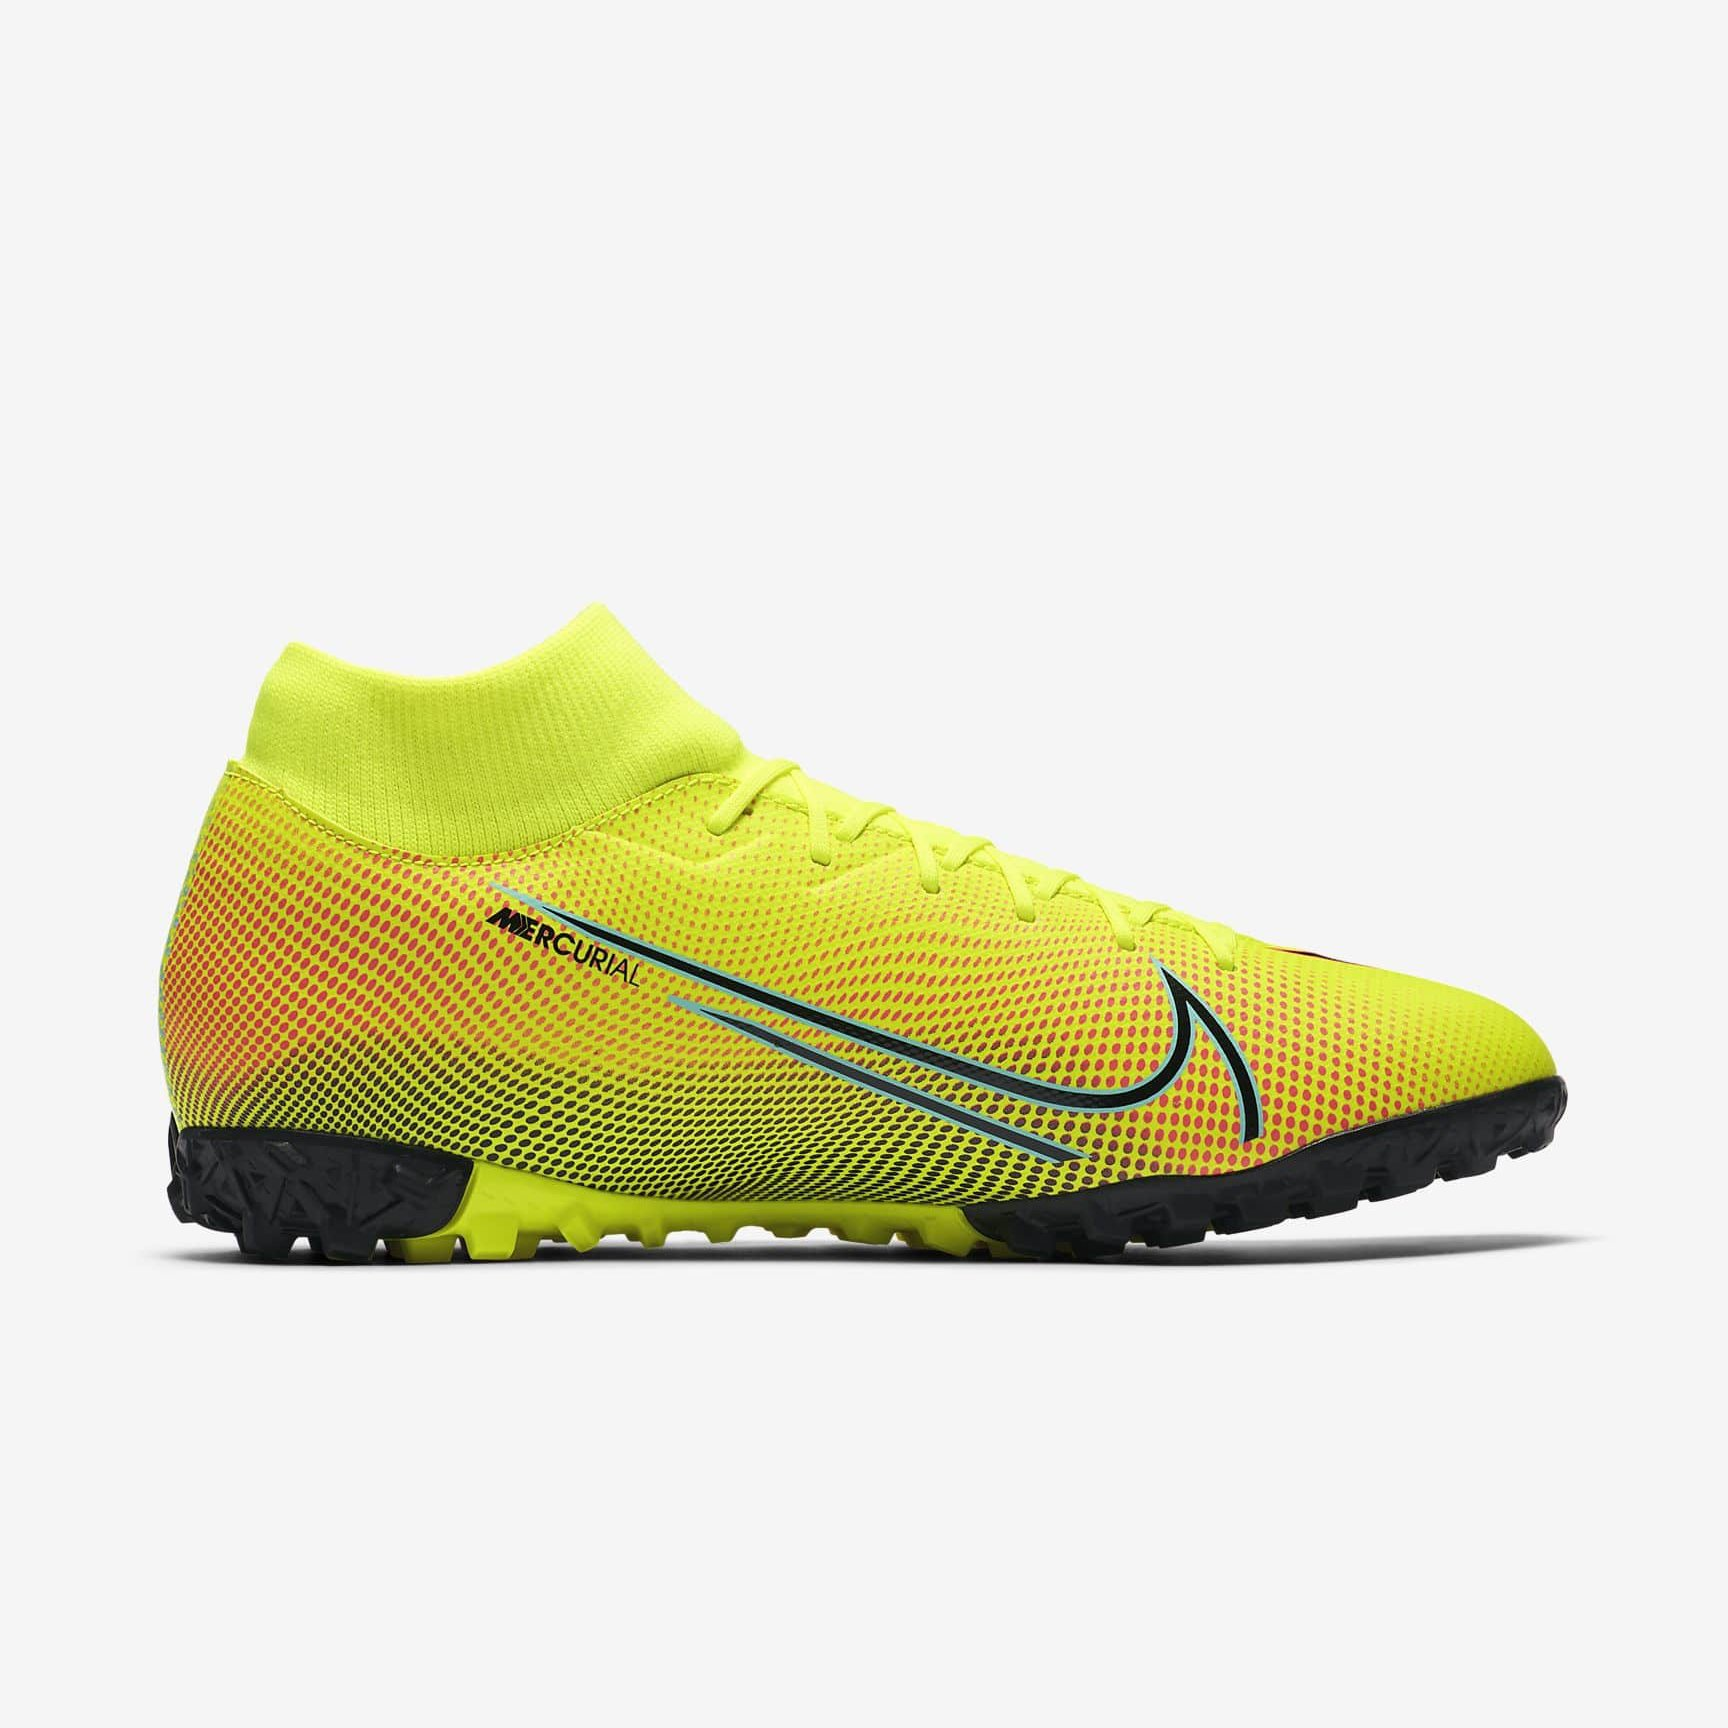 Шиповки Nike Mercurial Superfly 7 Academy Mds TF